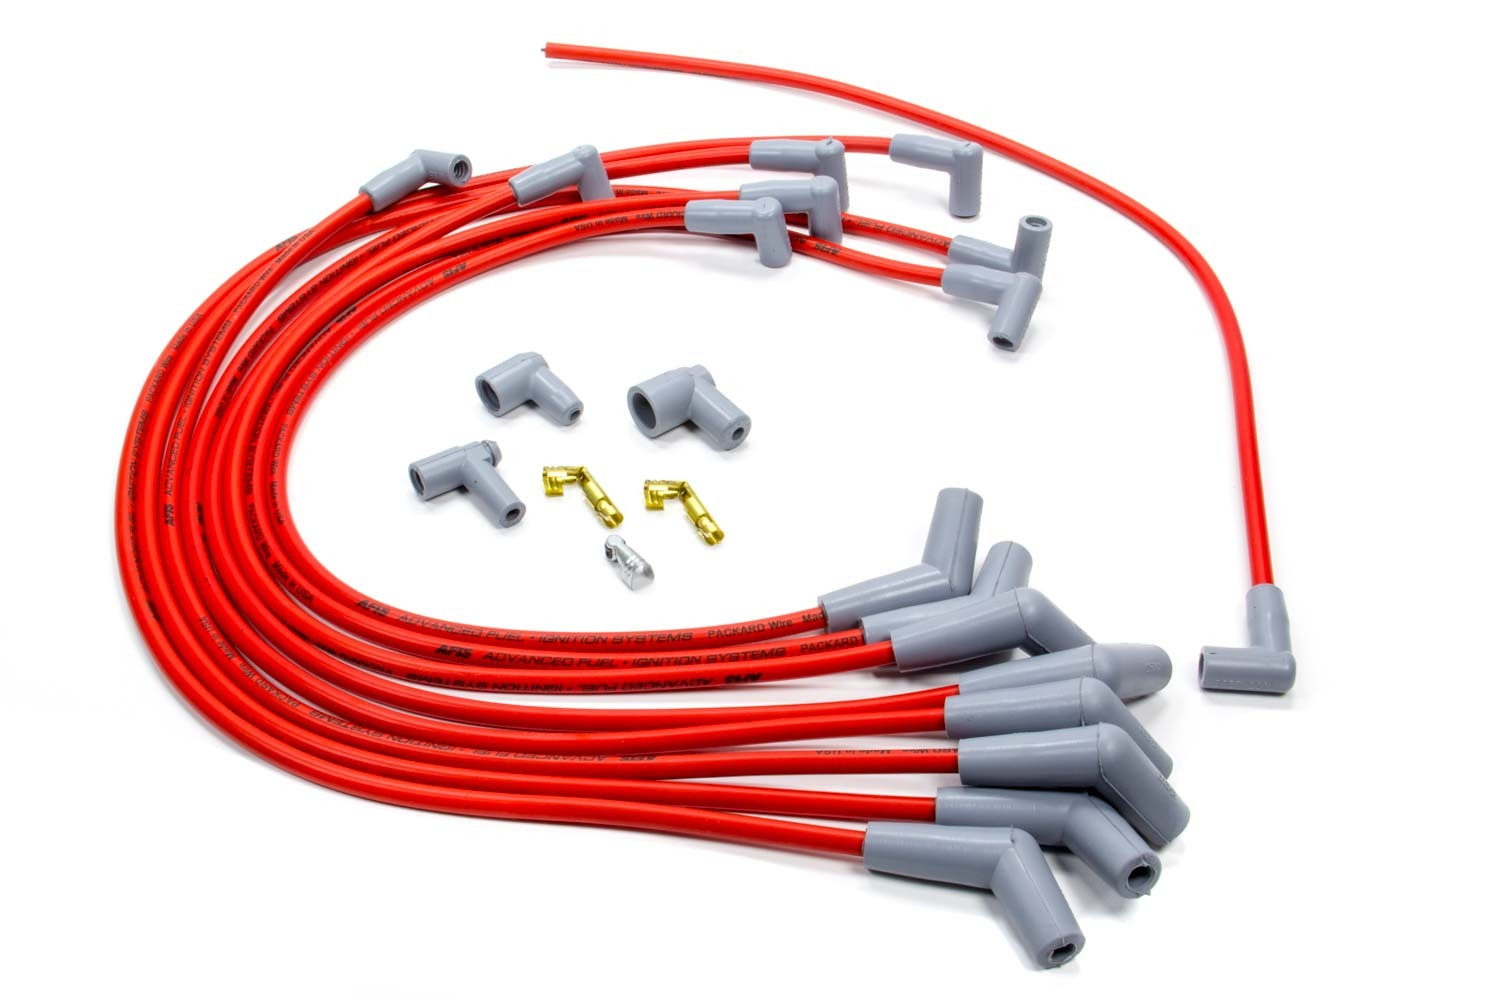 AFIS 850701 Spark Plug Wire Set, Series 50, Spiral Core, 8.5 mm, Red, Straight Plug Boots, HEI Style Terminal, Small Block Ford, Kit